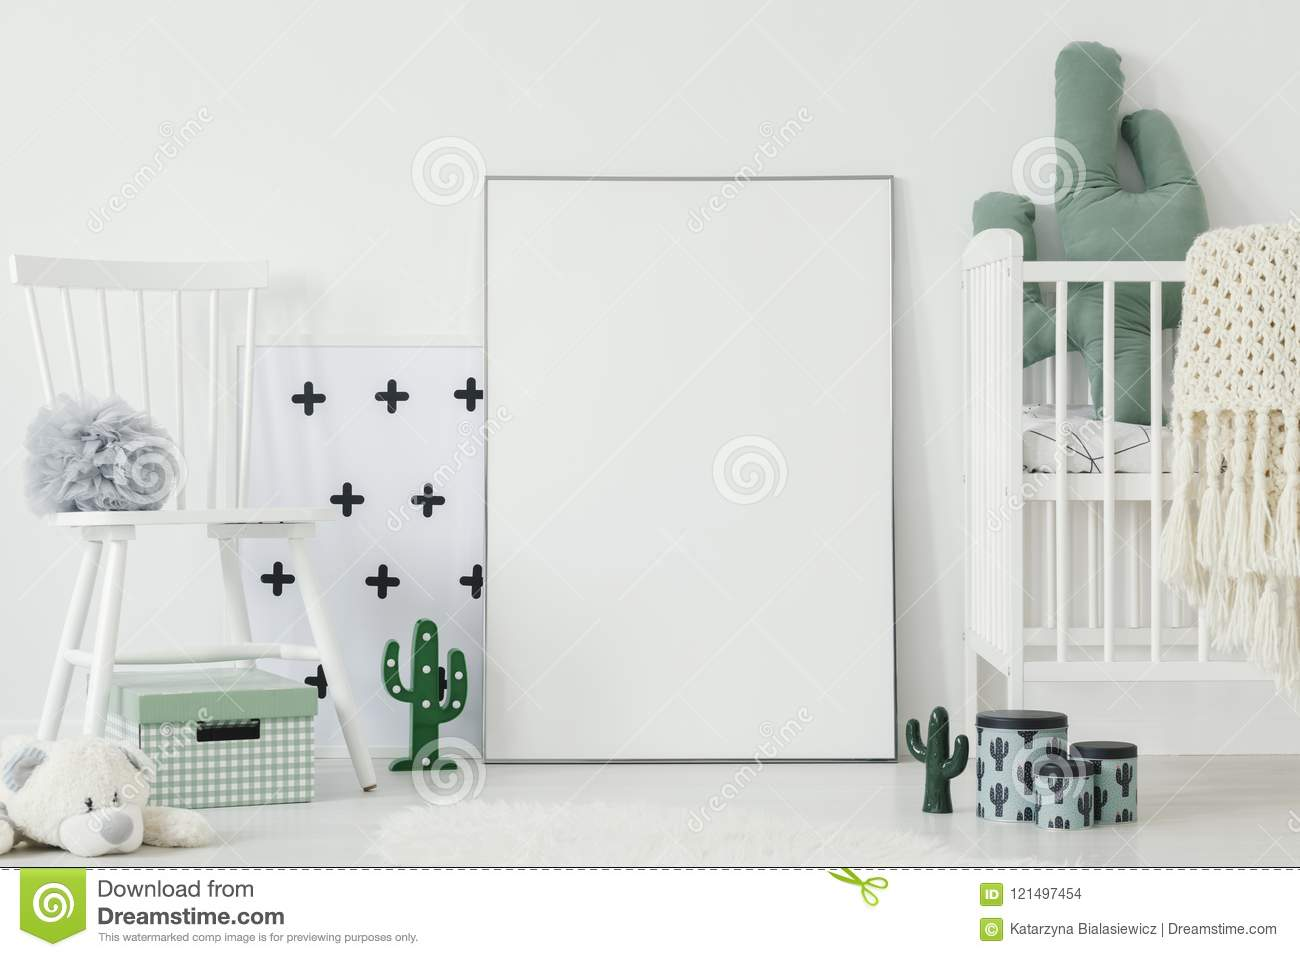 Grey pompom placed on white chair standing in bright baby bedroom interior with cactus shaped decor and empty poster on the floor